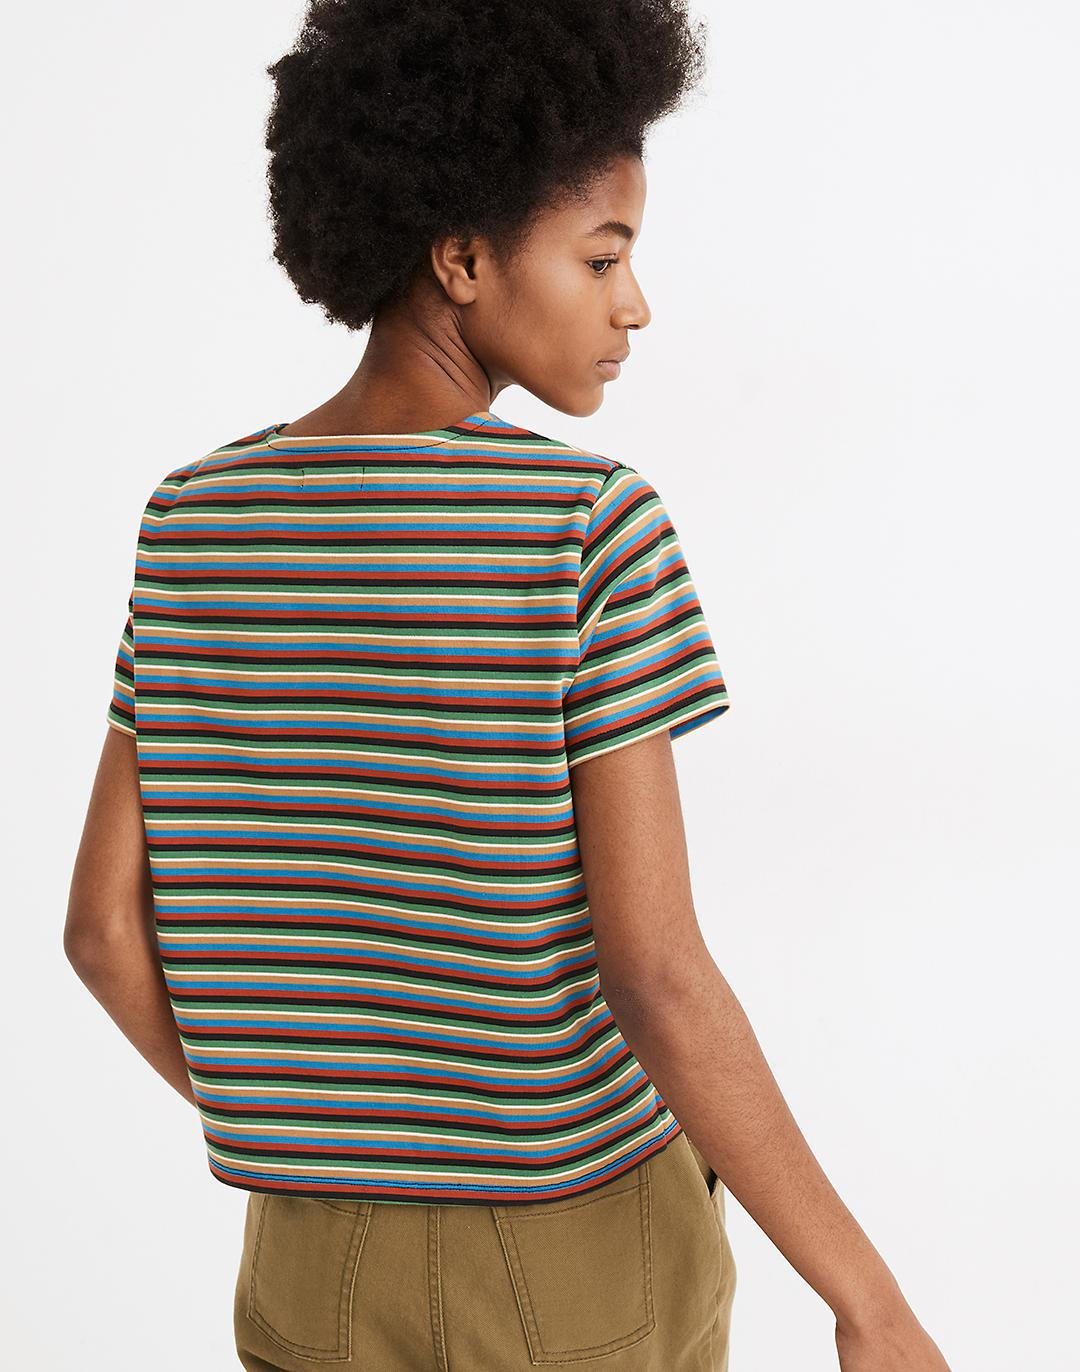 Luxe Boxy-Crop Tee in Mathis Stripe 2